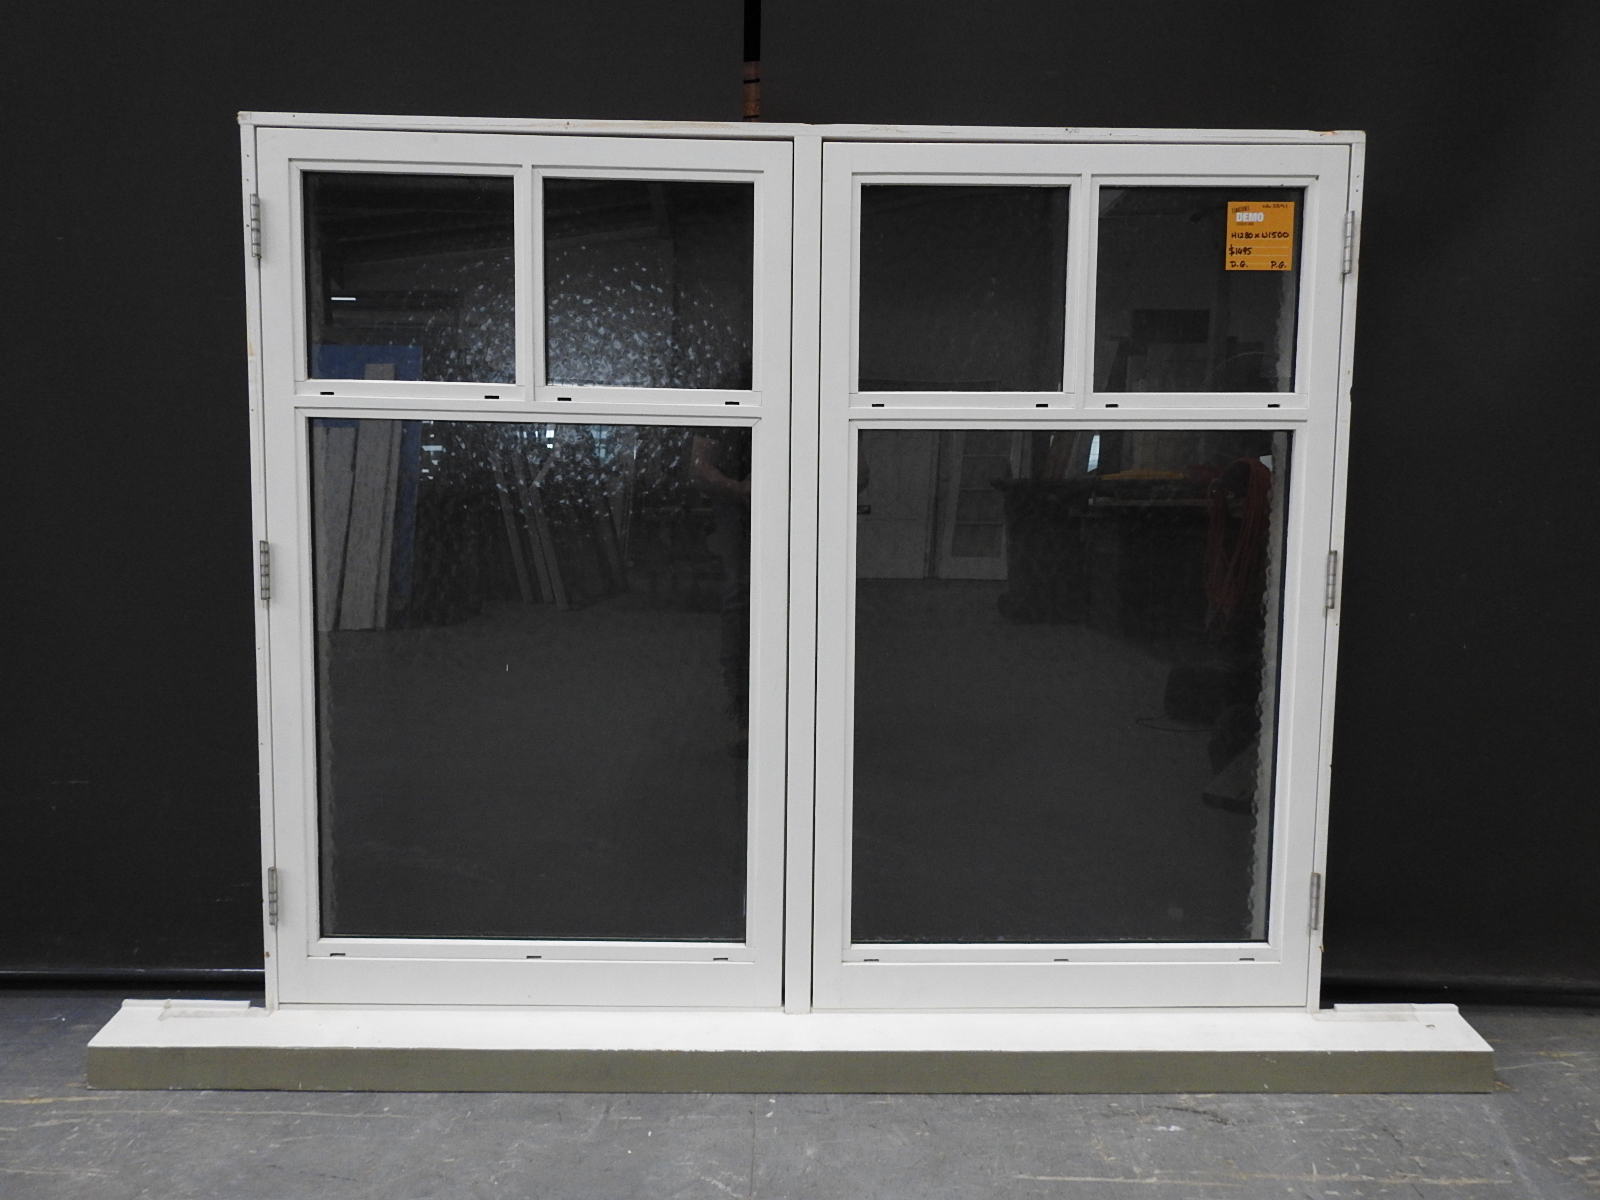 Bungalow style double glazed wooden casement window h for Wooden casement windows